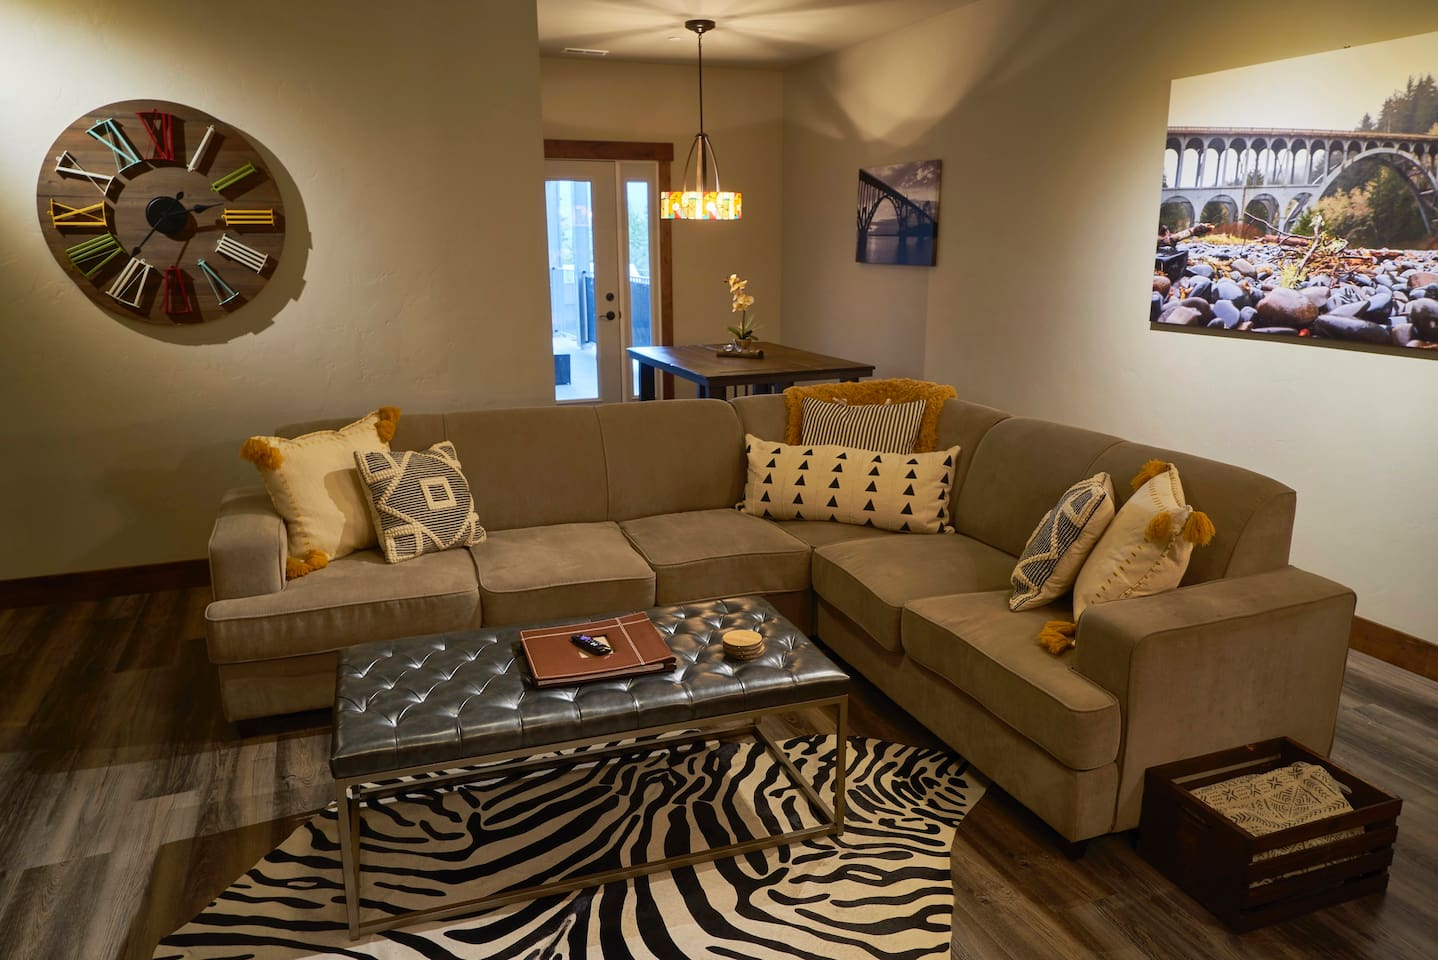 stylish cozy living room with open concept